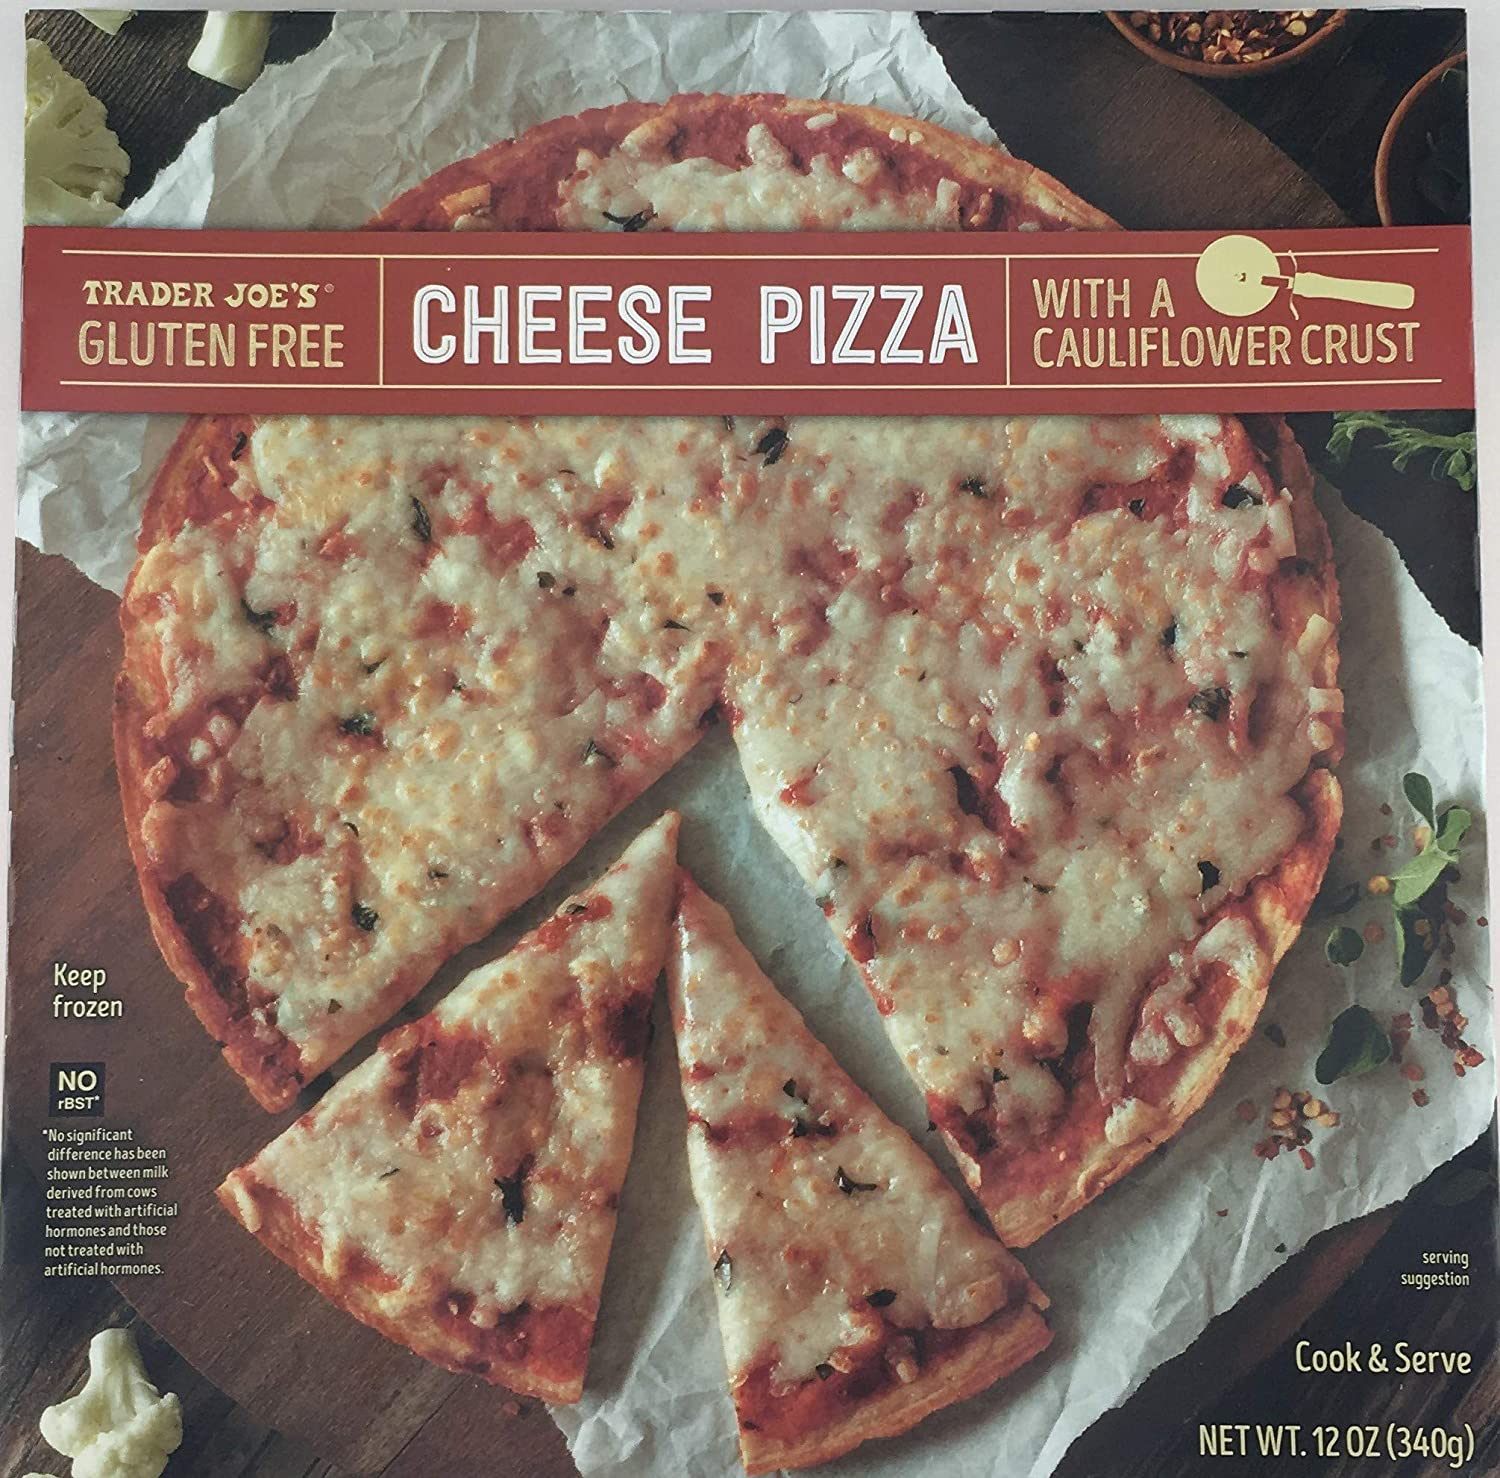 The best gluten-free pizza brands from our readers: Trader Joe's Gluten Free Pizza